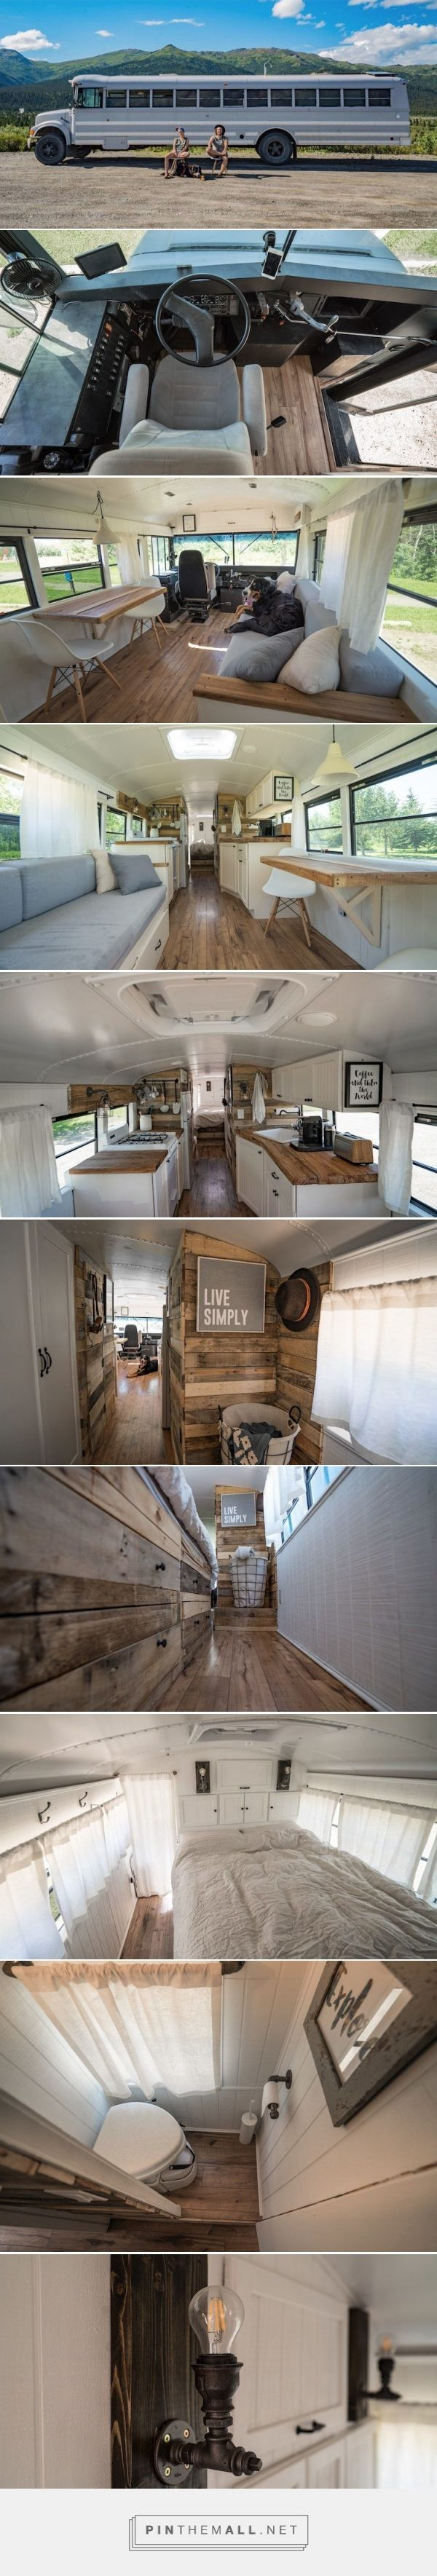 Best 25+ Tiny homes on wheels ideas on Pinterest | House on wheels ...